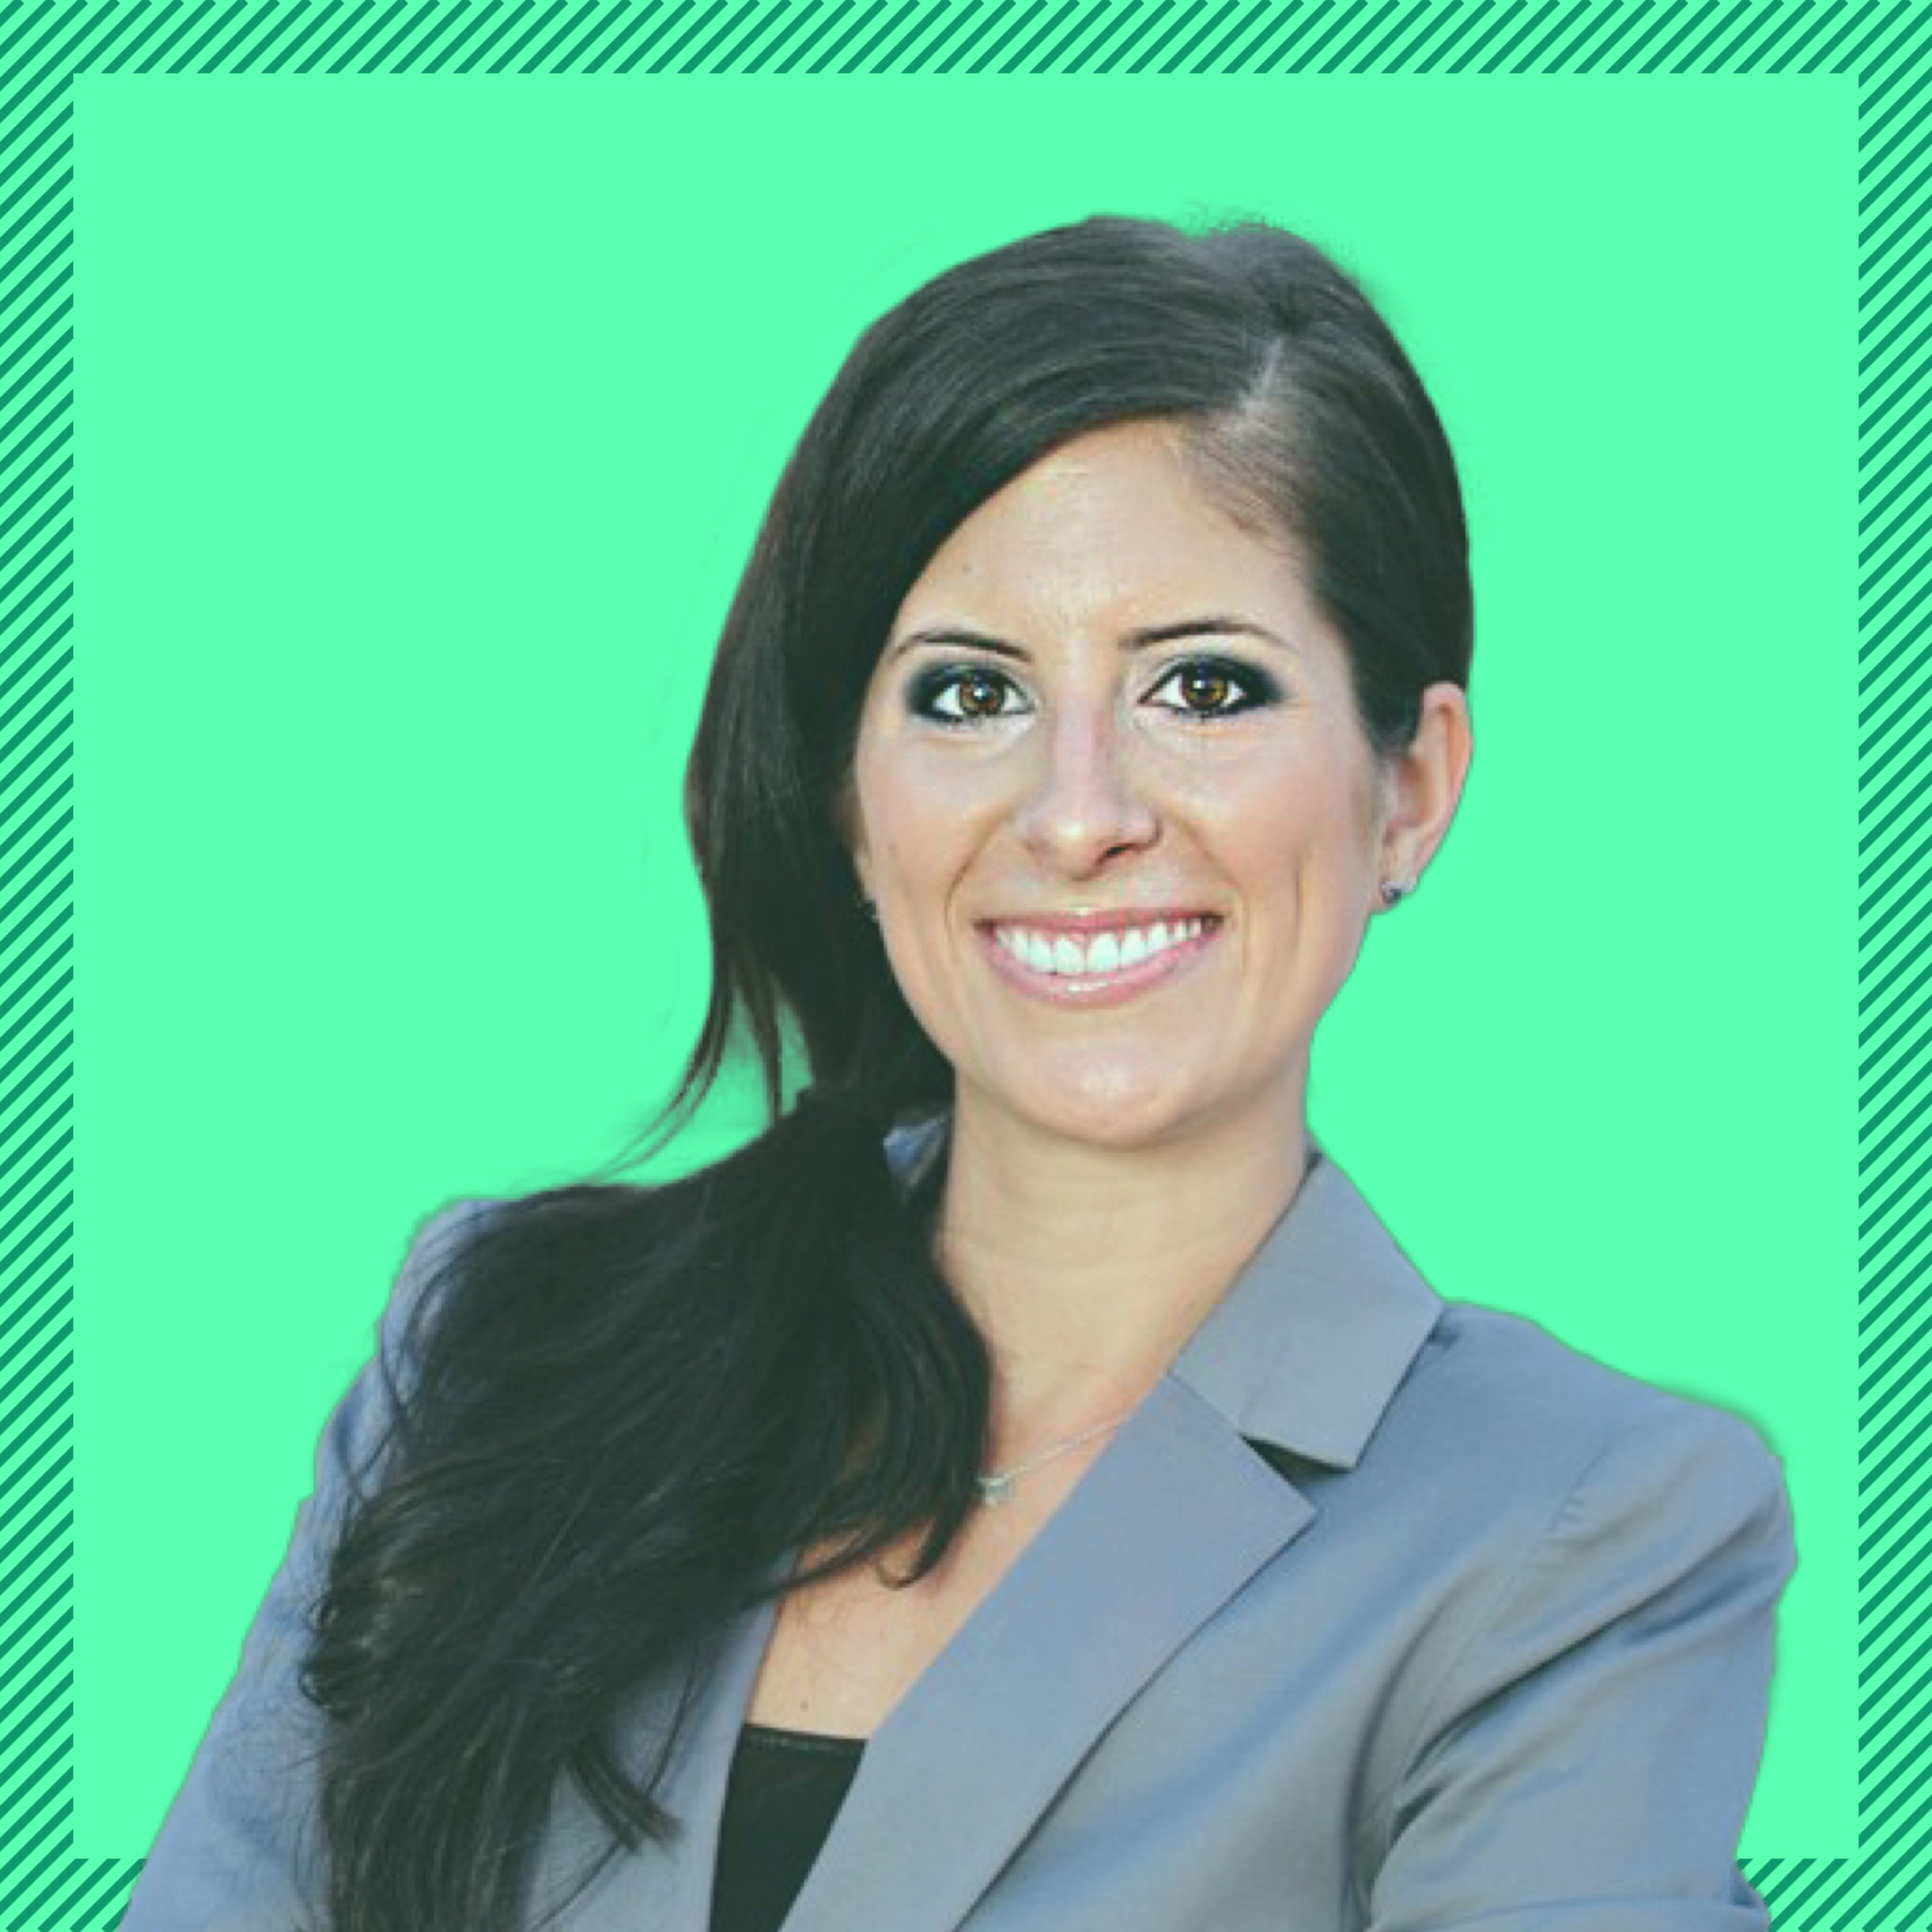 Photo of Nikki Dunn, a certified financial planner who founded the She Talks Finance online community